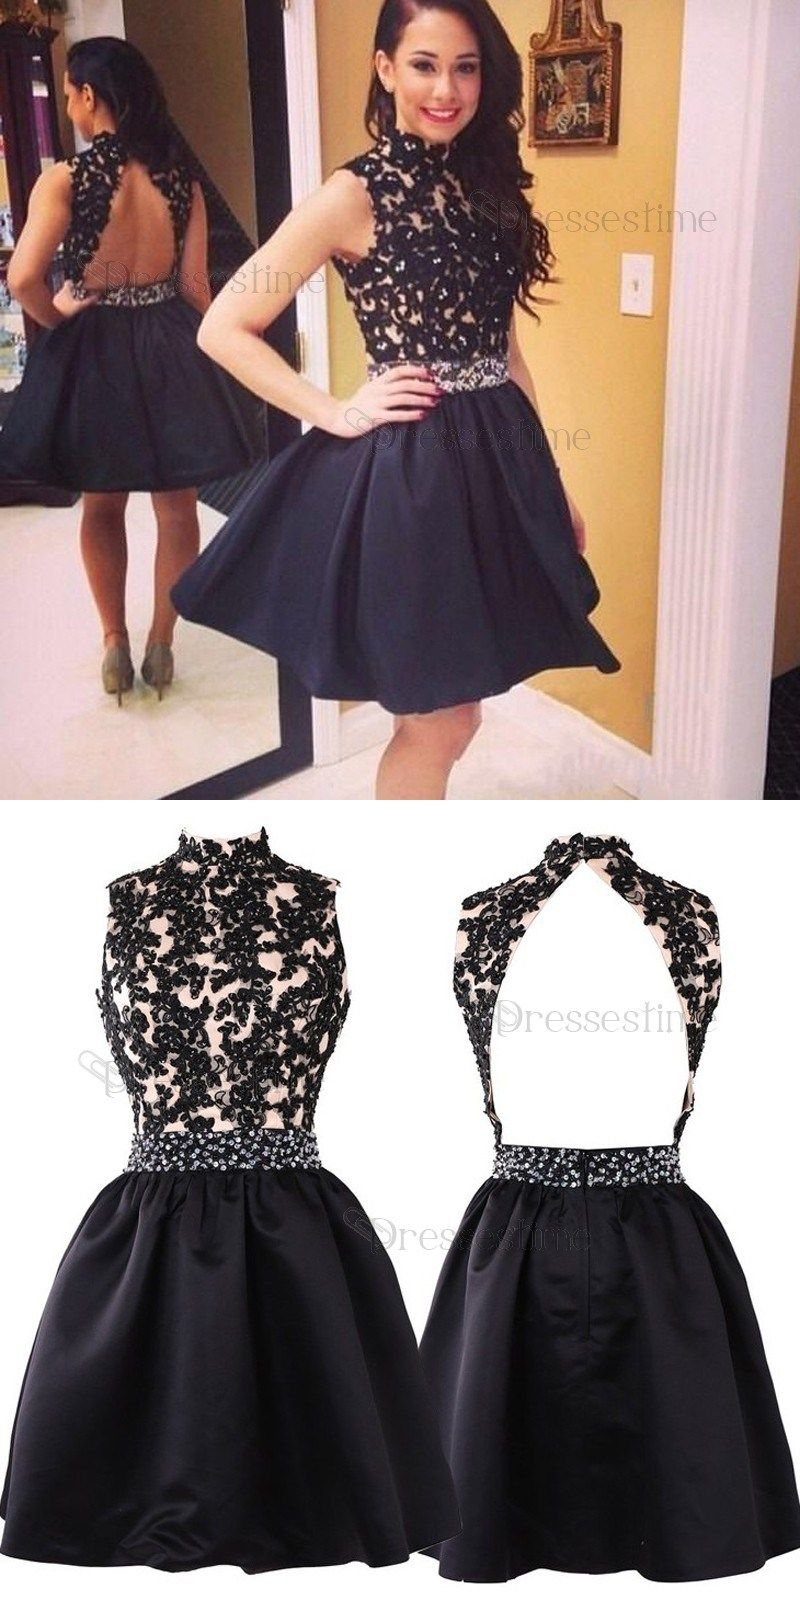 Aline high neck open back black satin short homecoming dress with